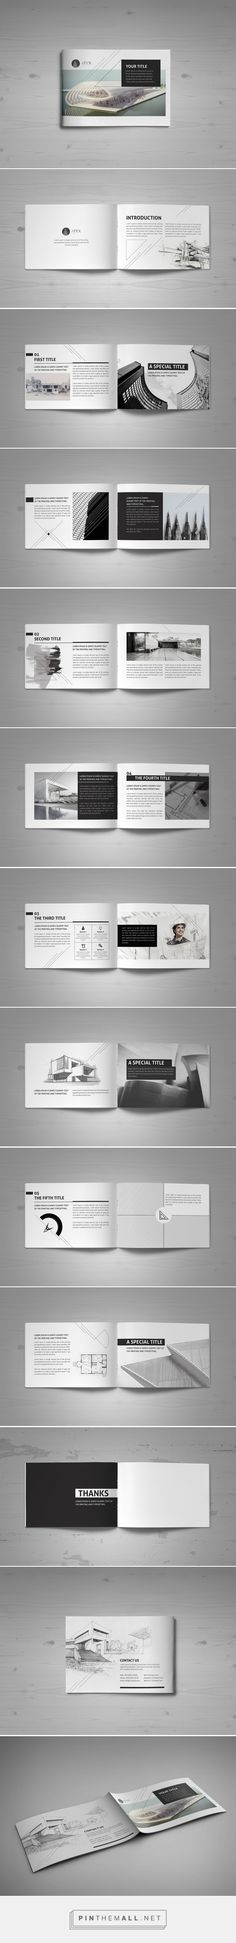 질문부분_ Minimal Modern Black & White Architecture Brochure  on Behance - created via http://pinthemall.net